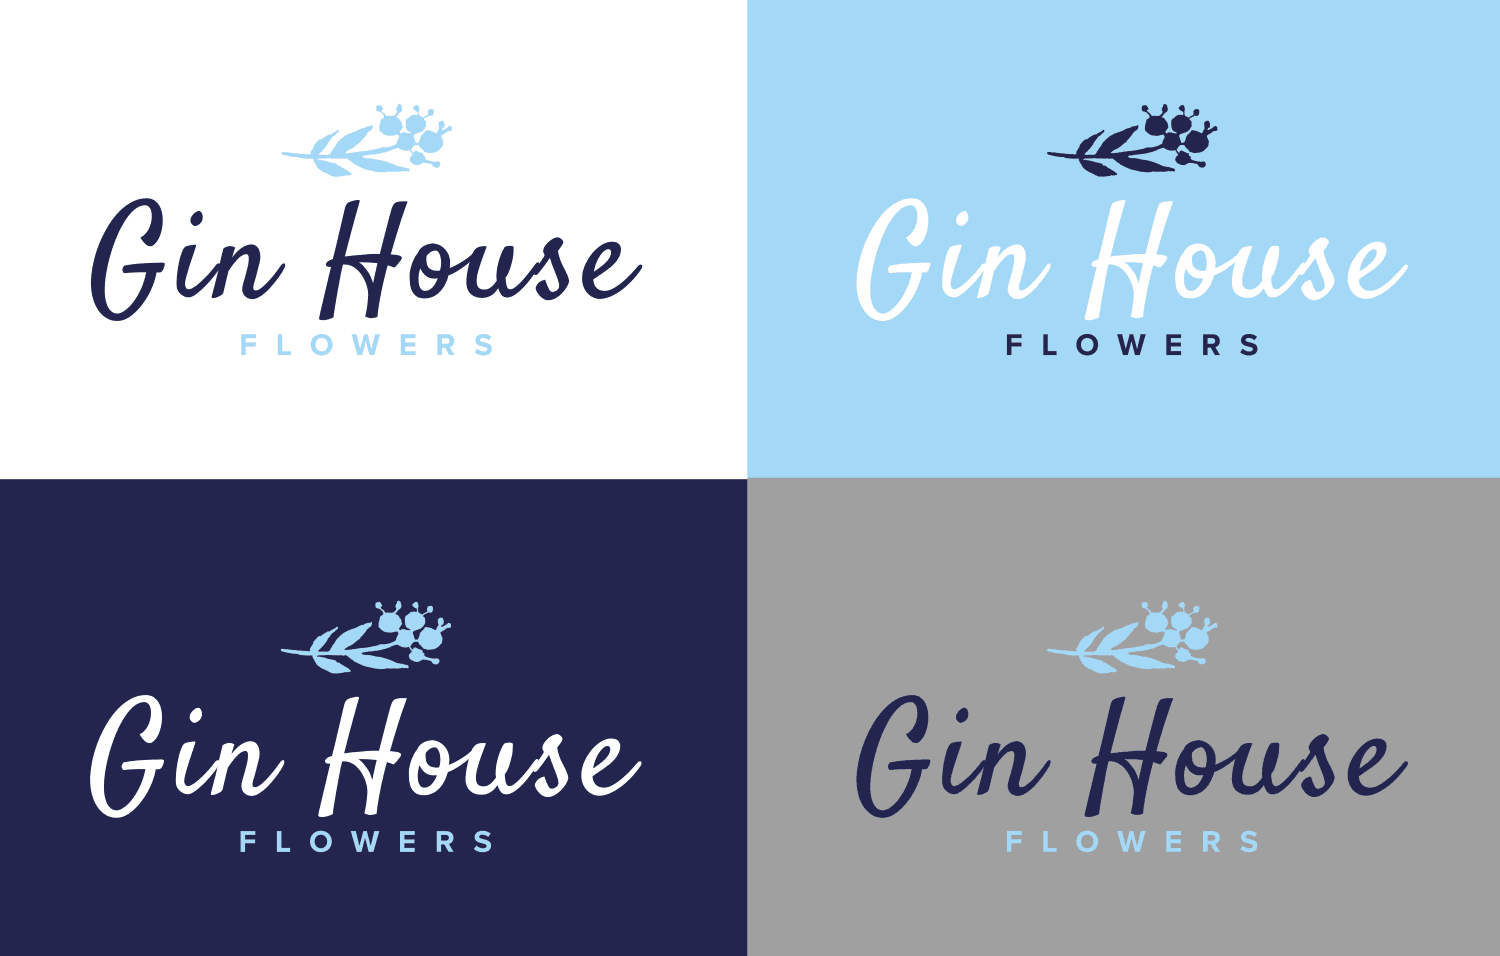 Gin House Flowers logo 4-way